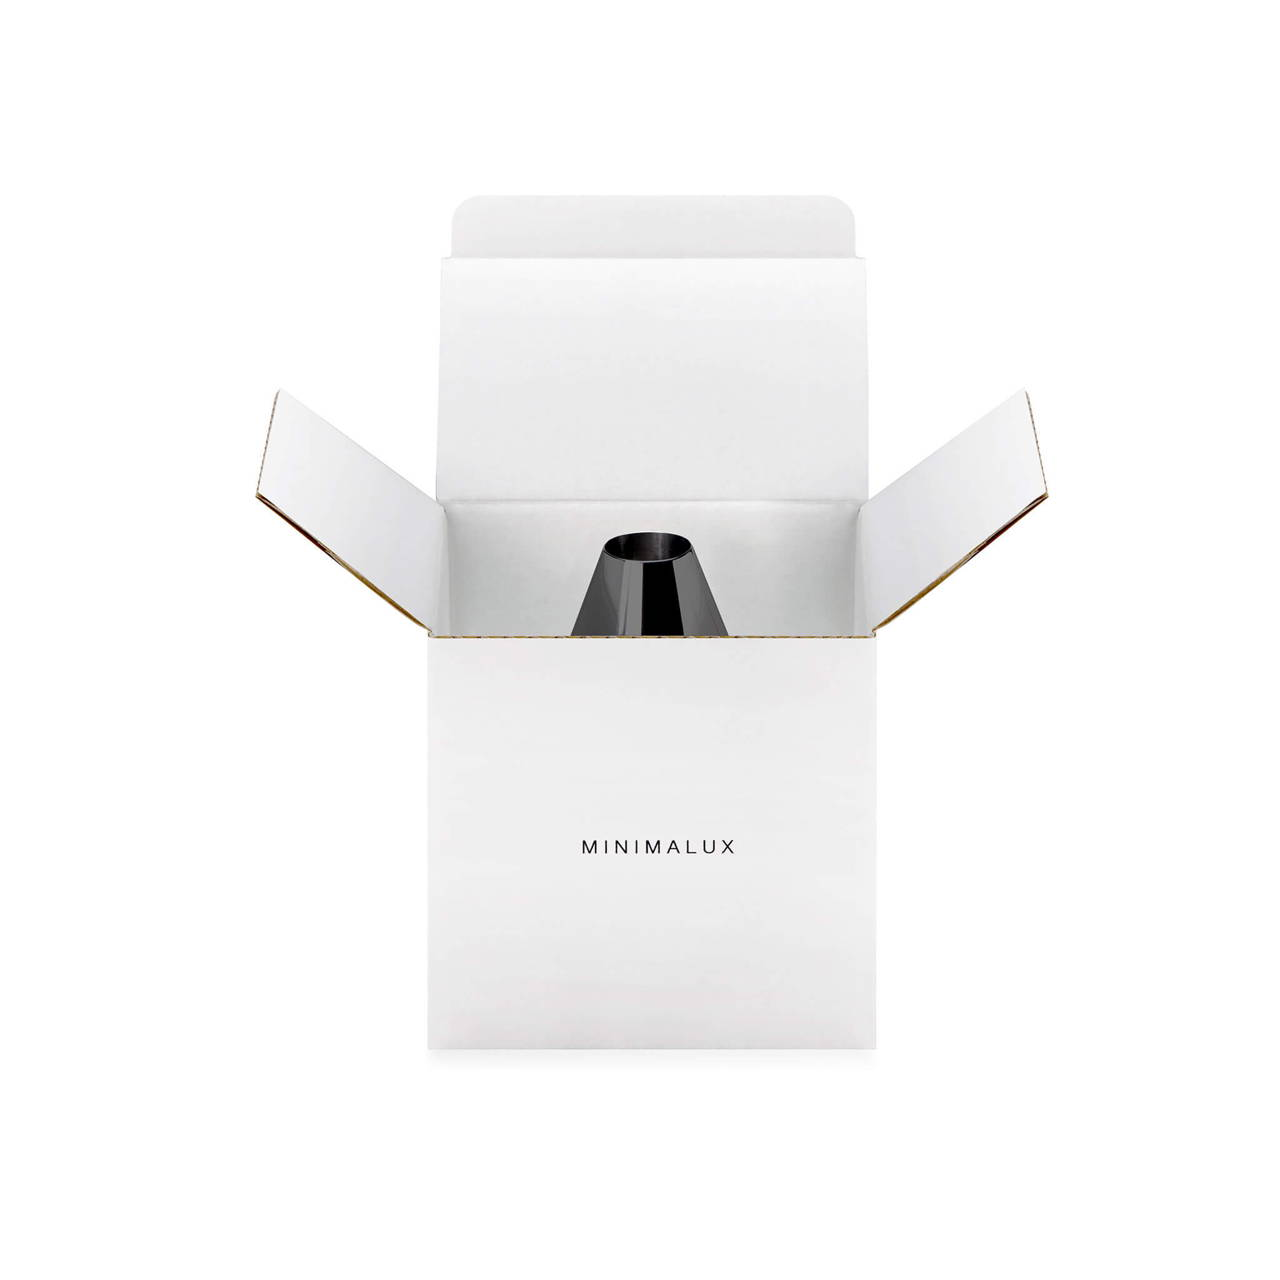 A Candleholder packaging